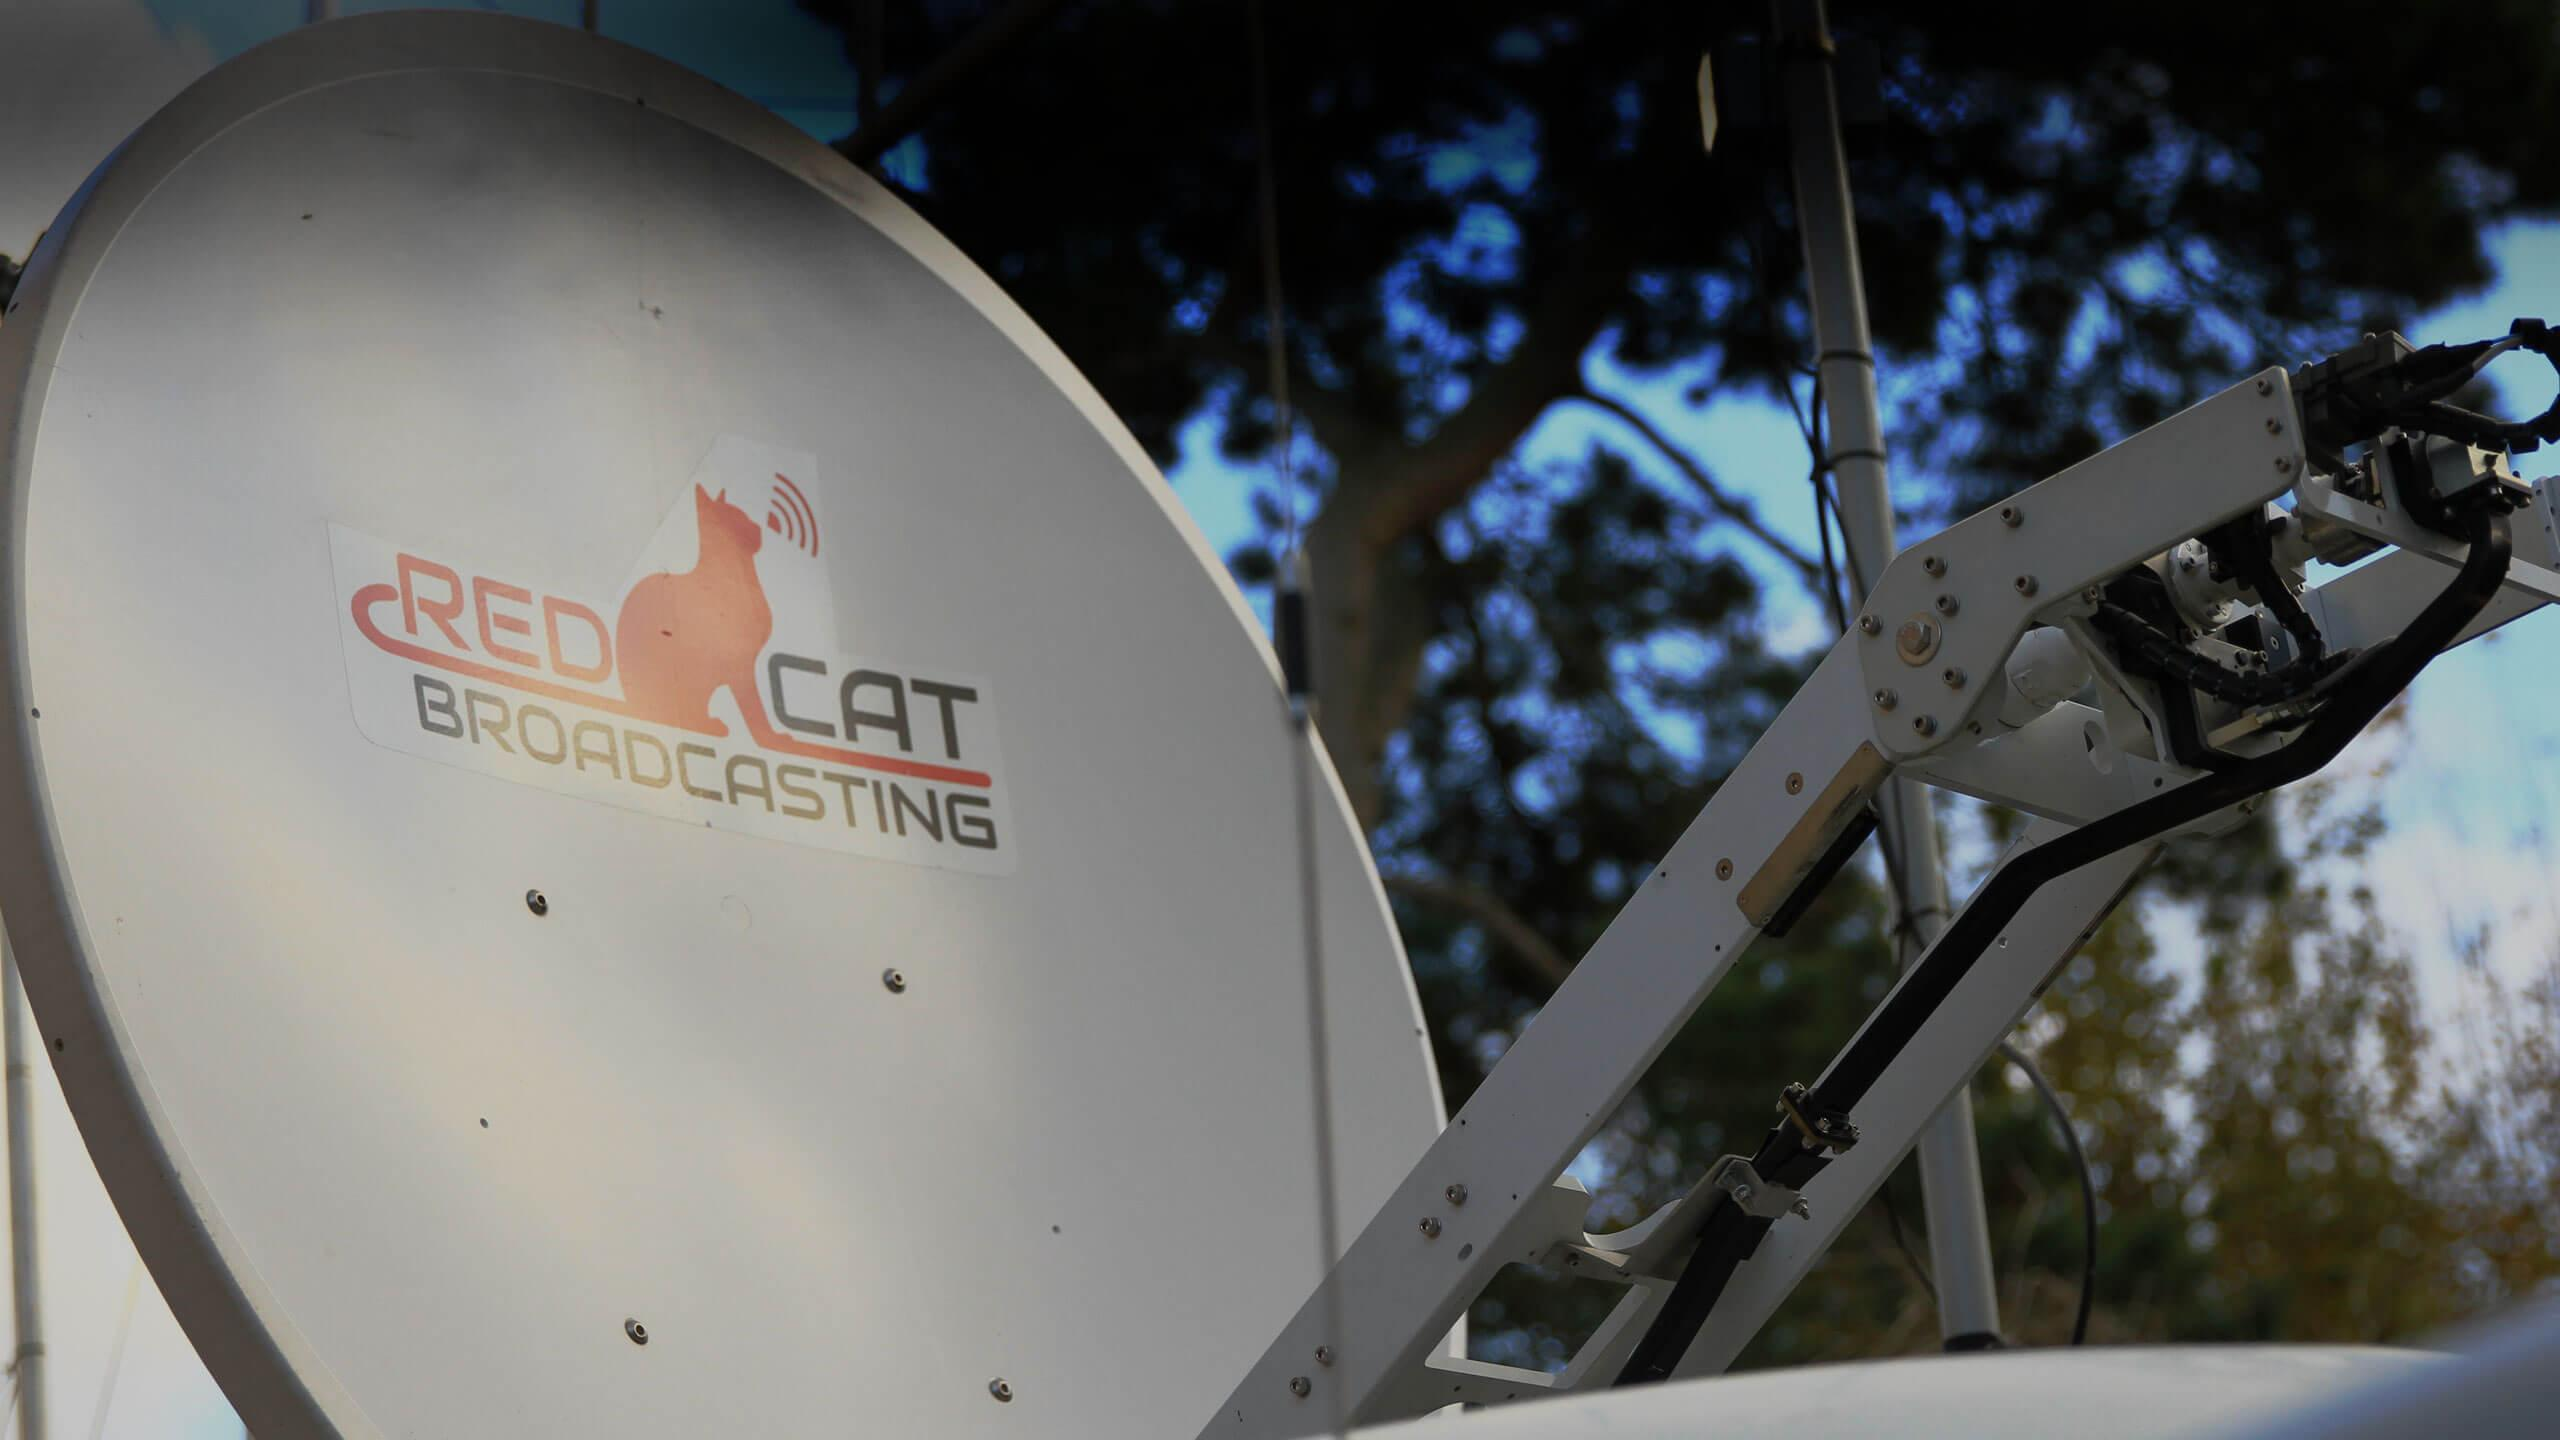 Red Cat Broadcasting Channel Engineering